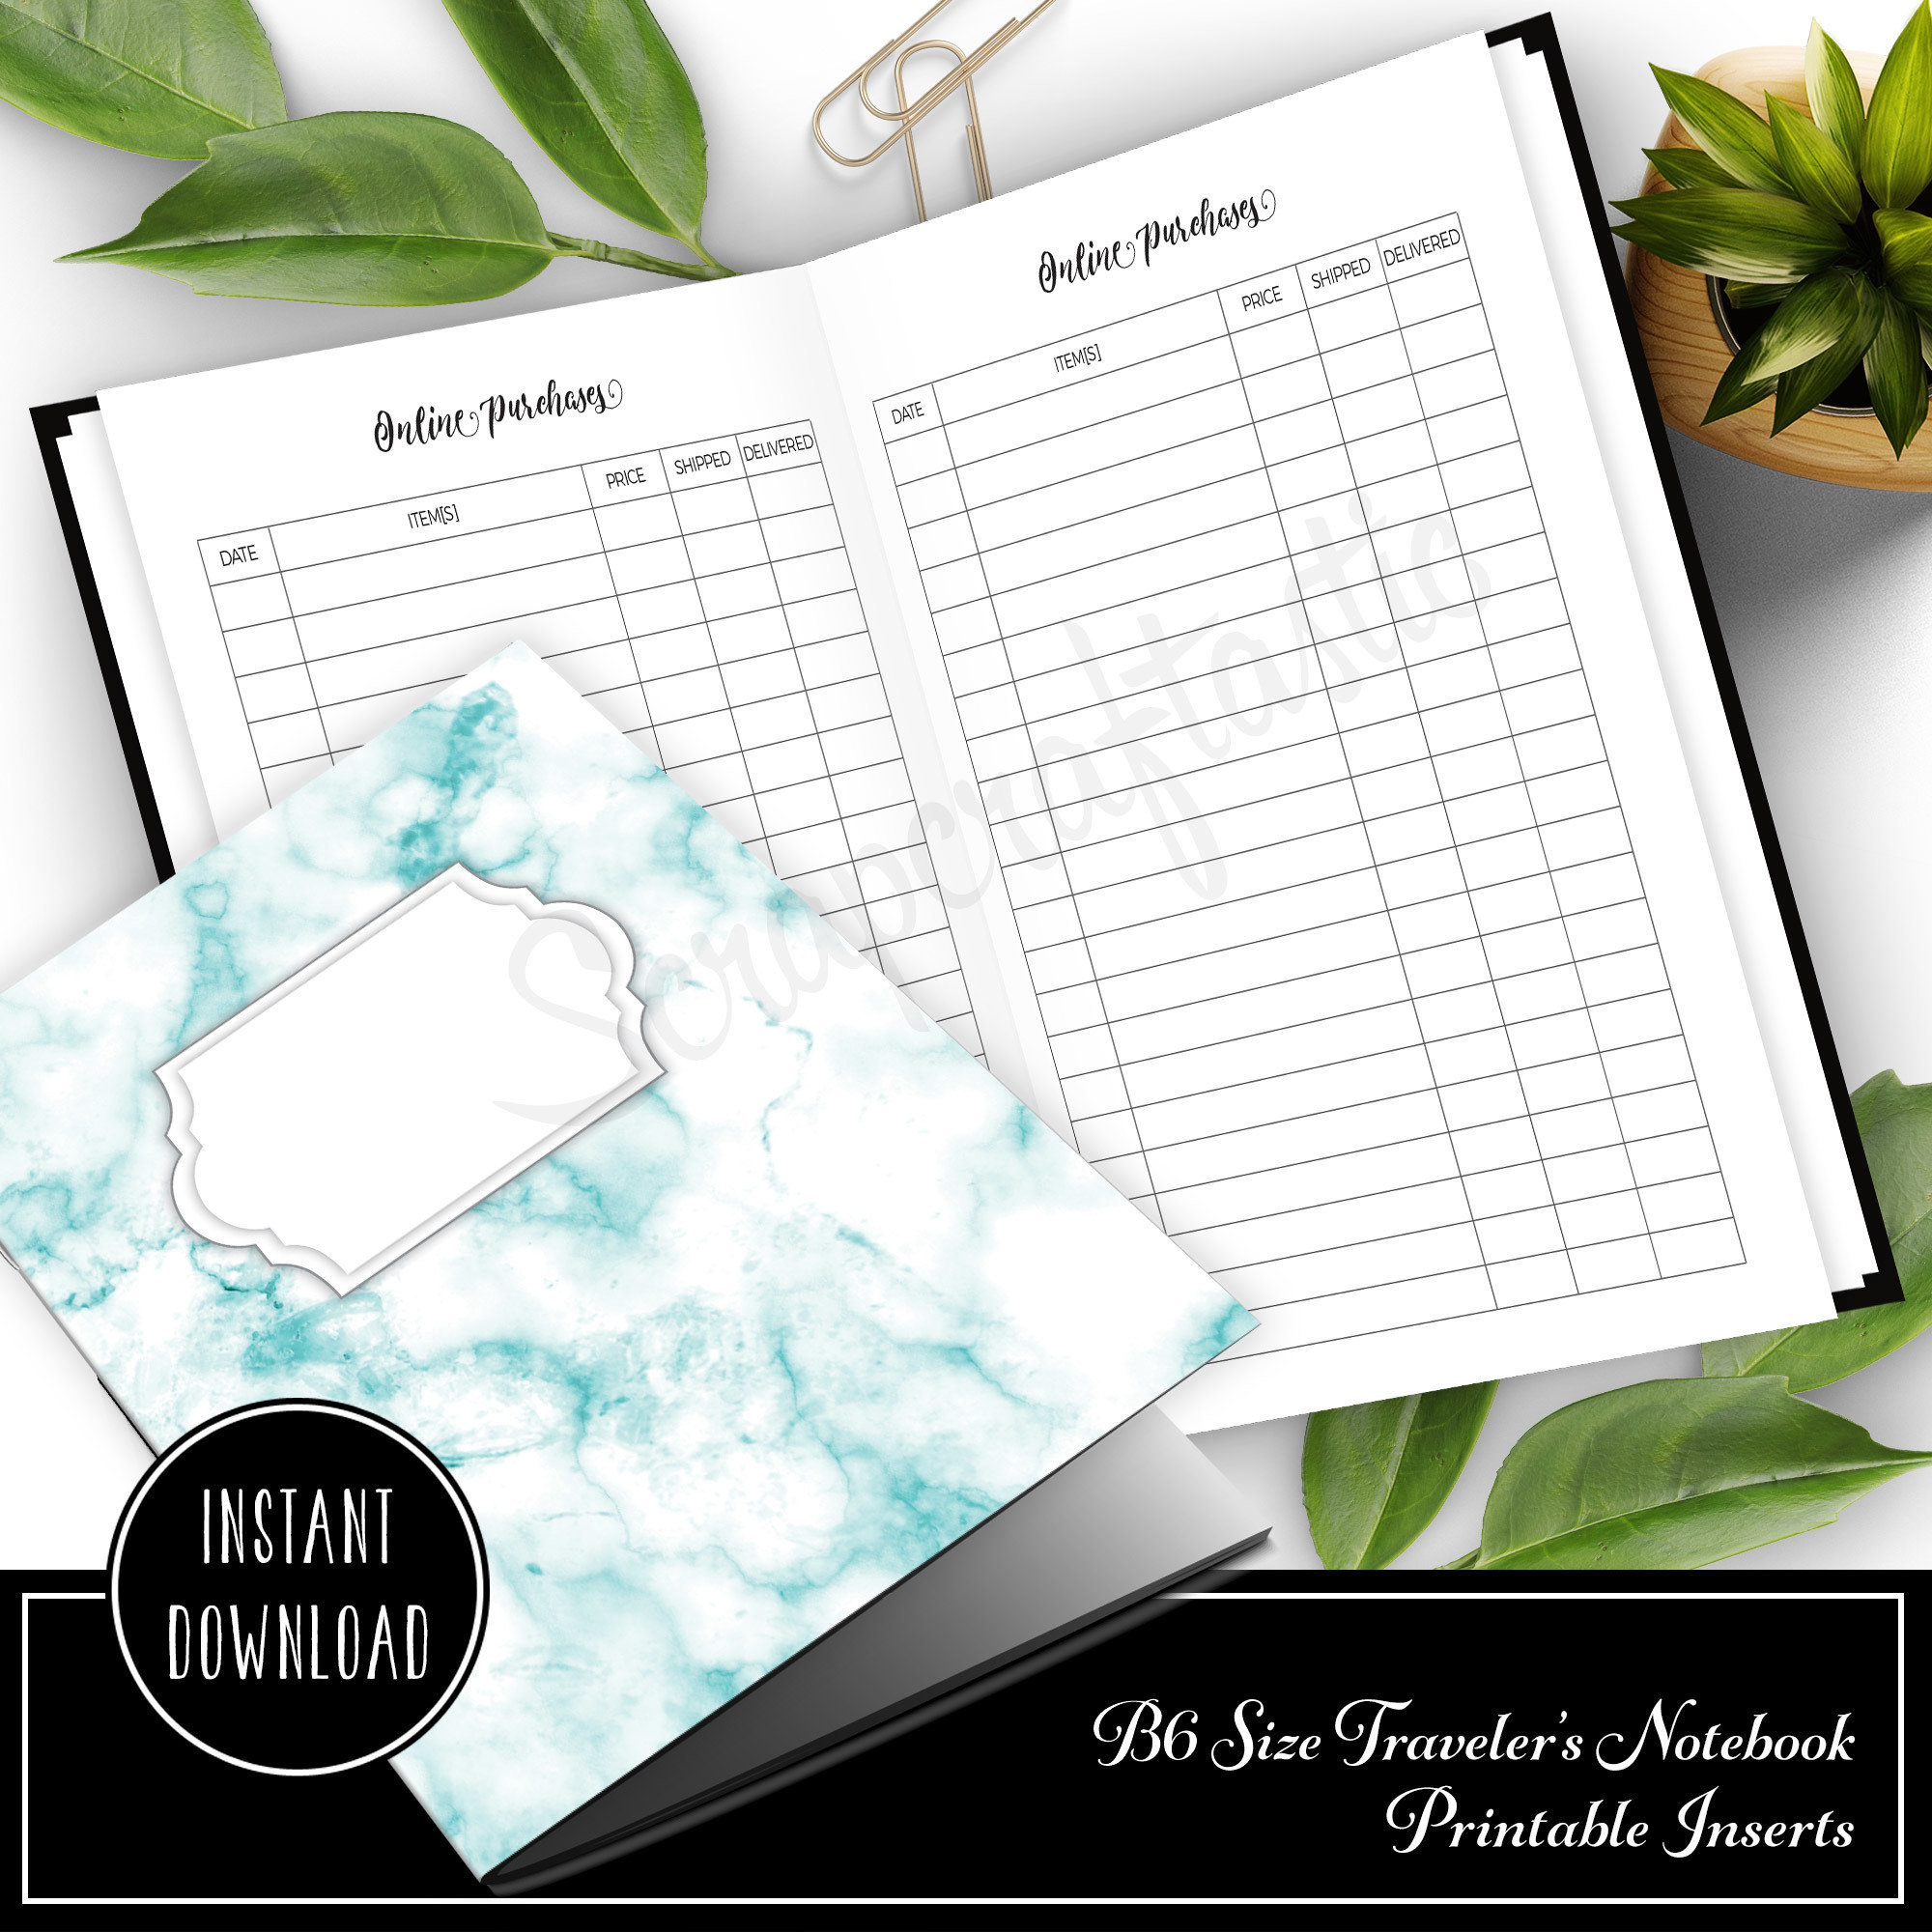 Online Purchase / Order Tracker B6 Traveler's Notebook Printable Insert 50021